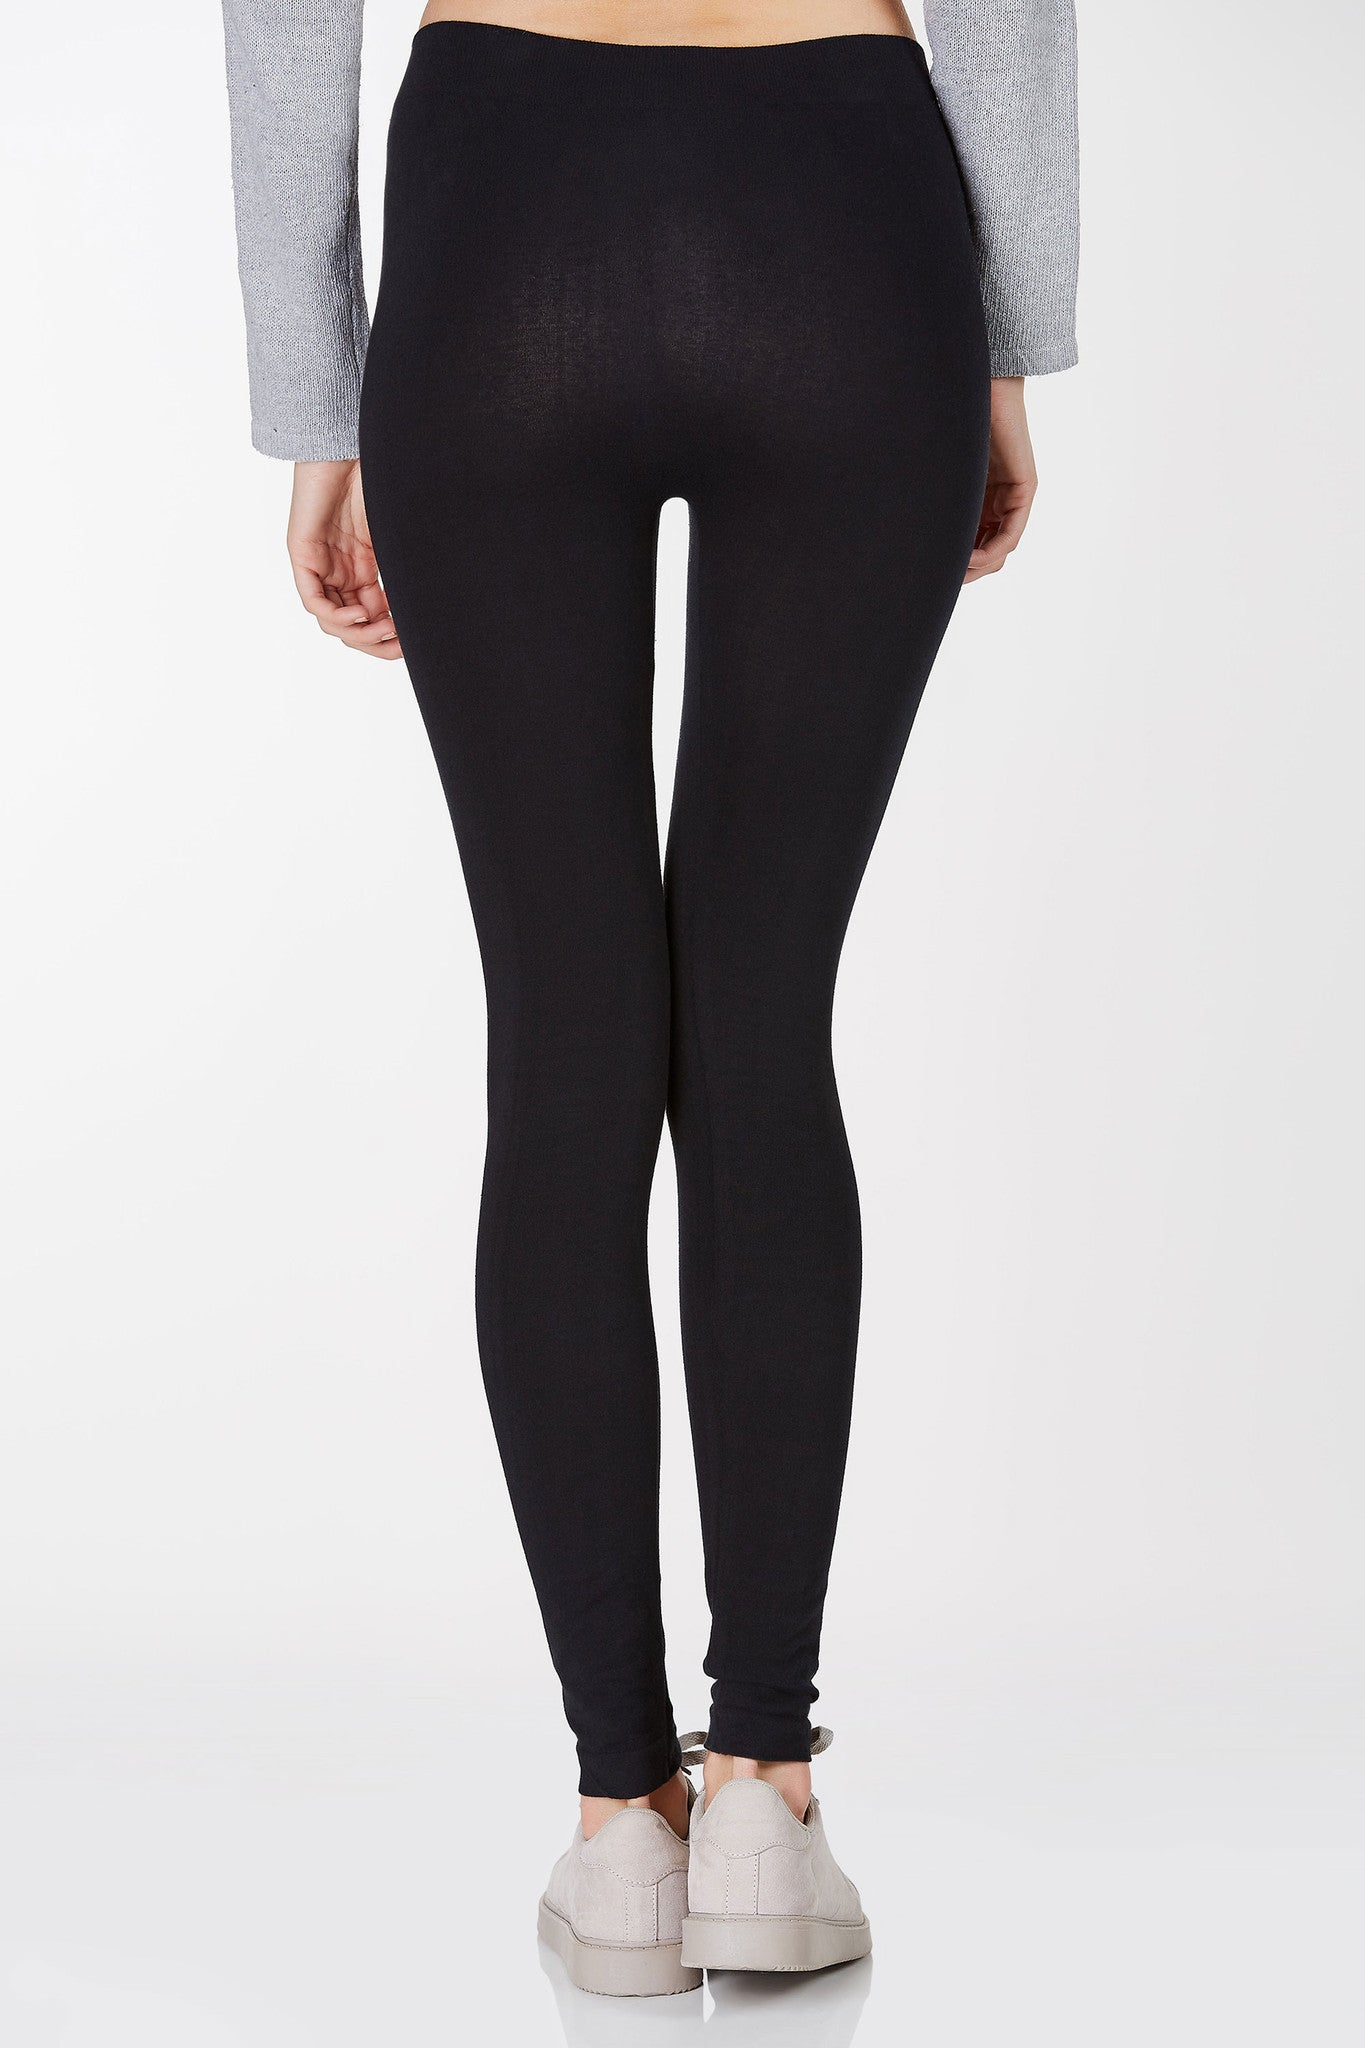 Mid rise leggings with stretchy fit. Ribbed waistband with overall slim fit